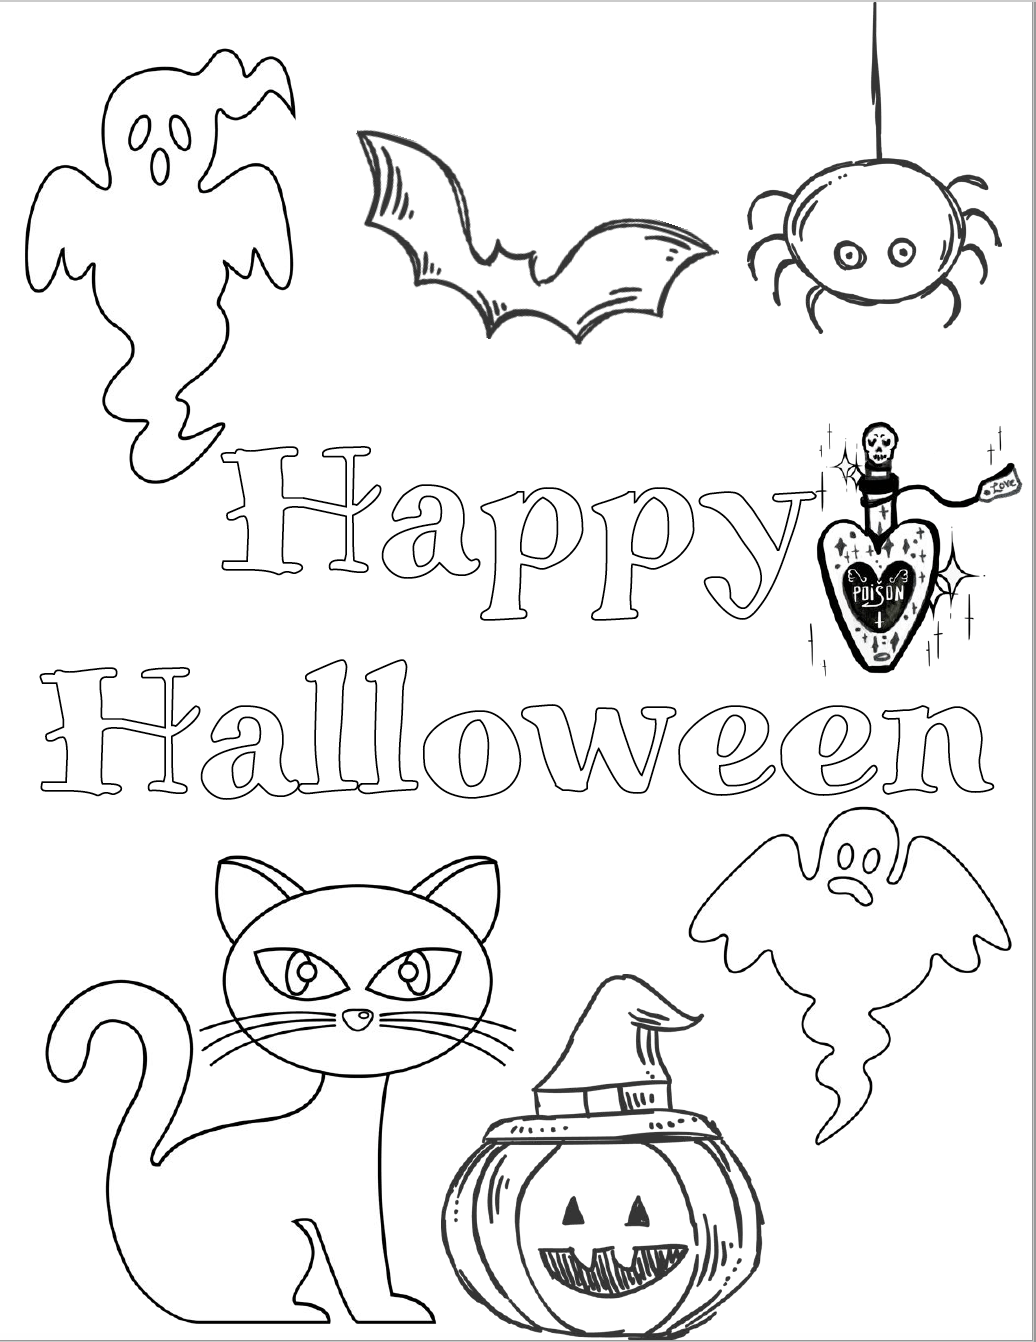 printable halloween coloring pages 5 free printable halloween coloring pages for kids printable halloween pages coloring